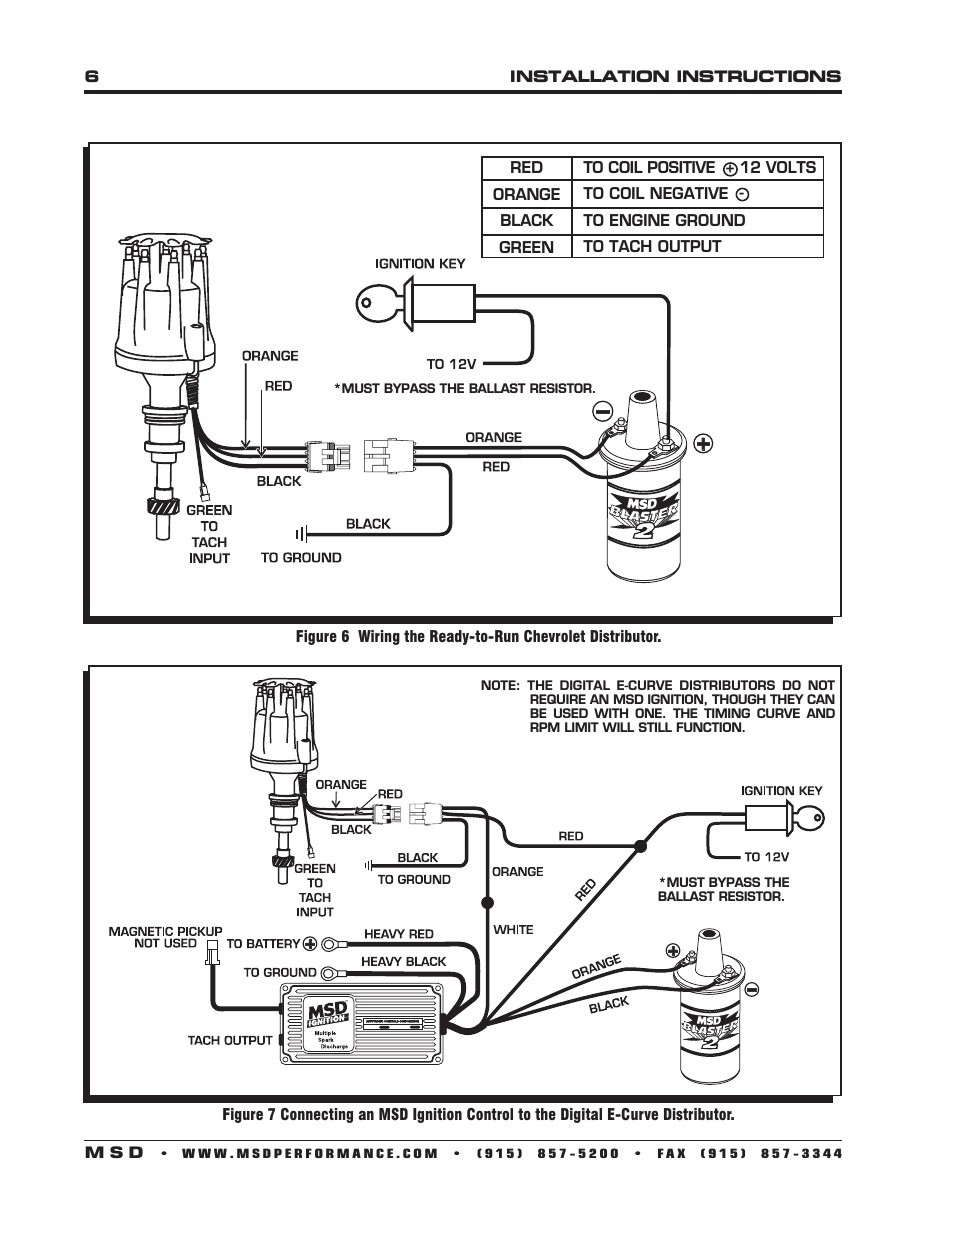 Msd Wiring Jeep Library Diagram For A Distributor 85561 Schematics Diagrams U2022 6a 6200